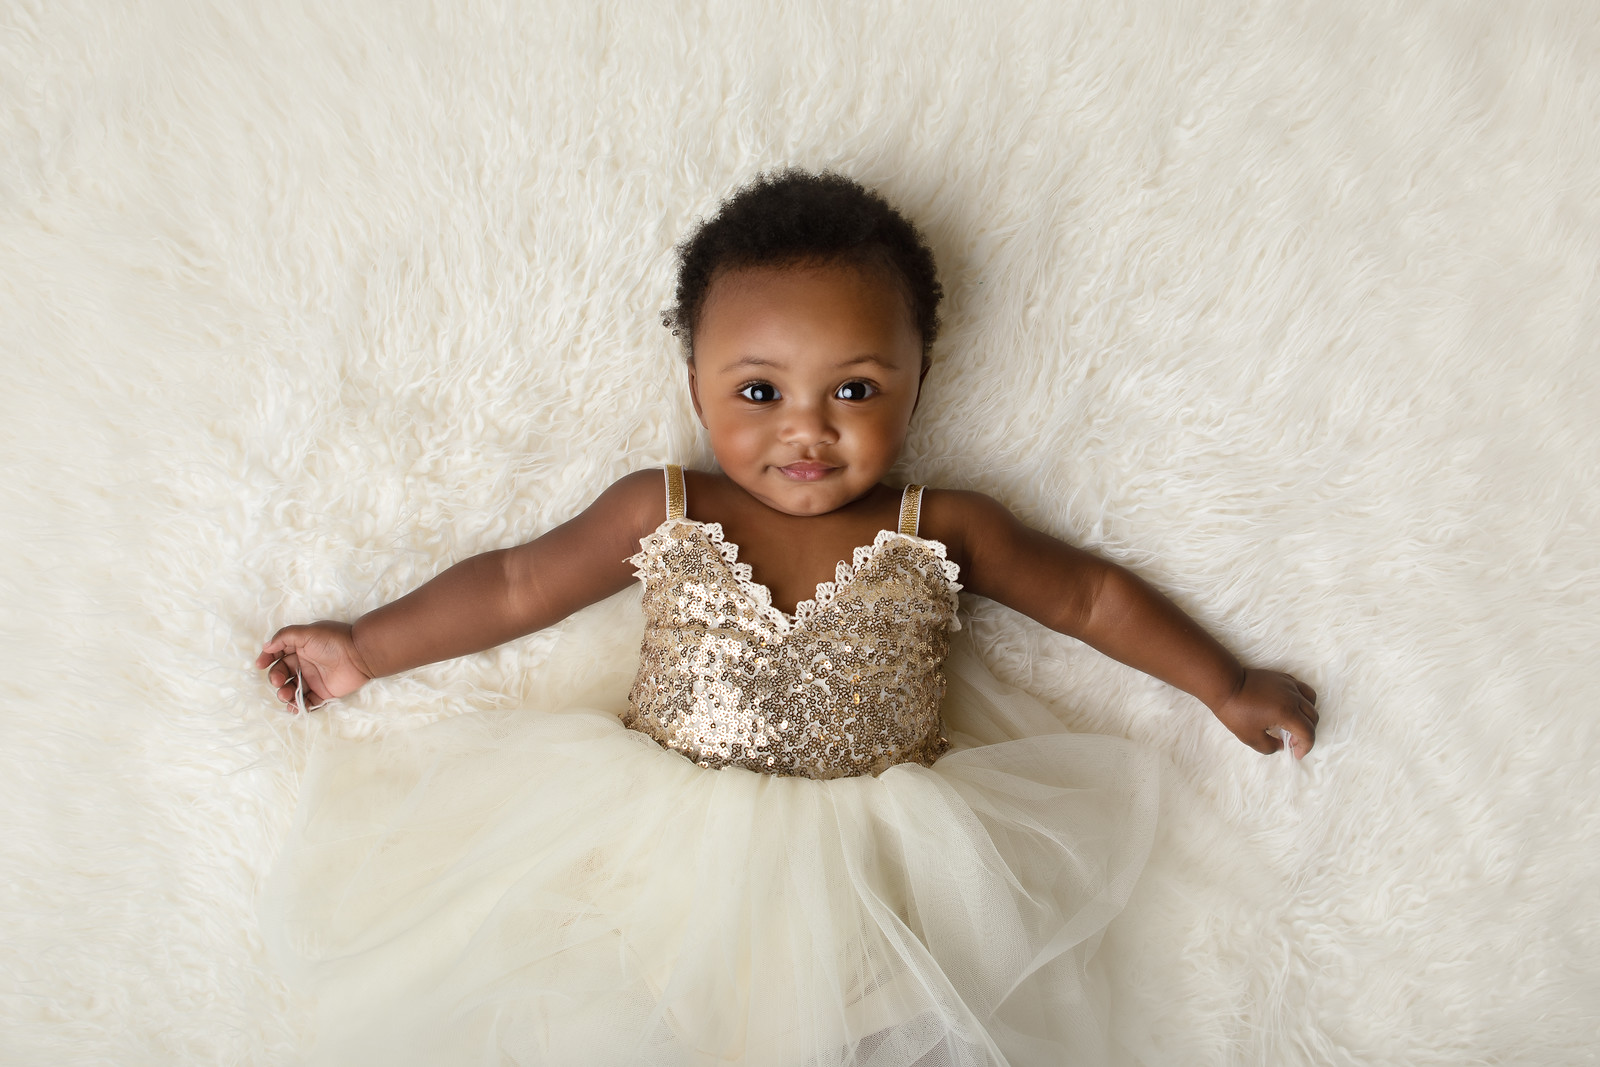 Baby Jordyn in studio session